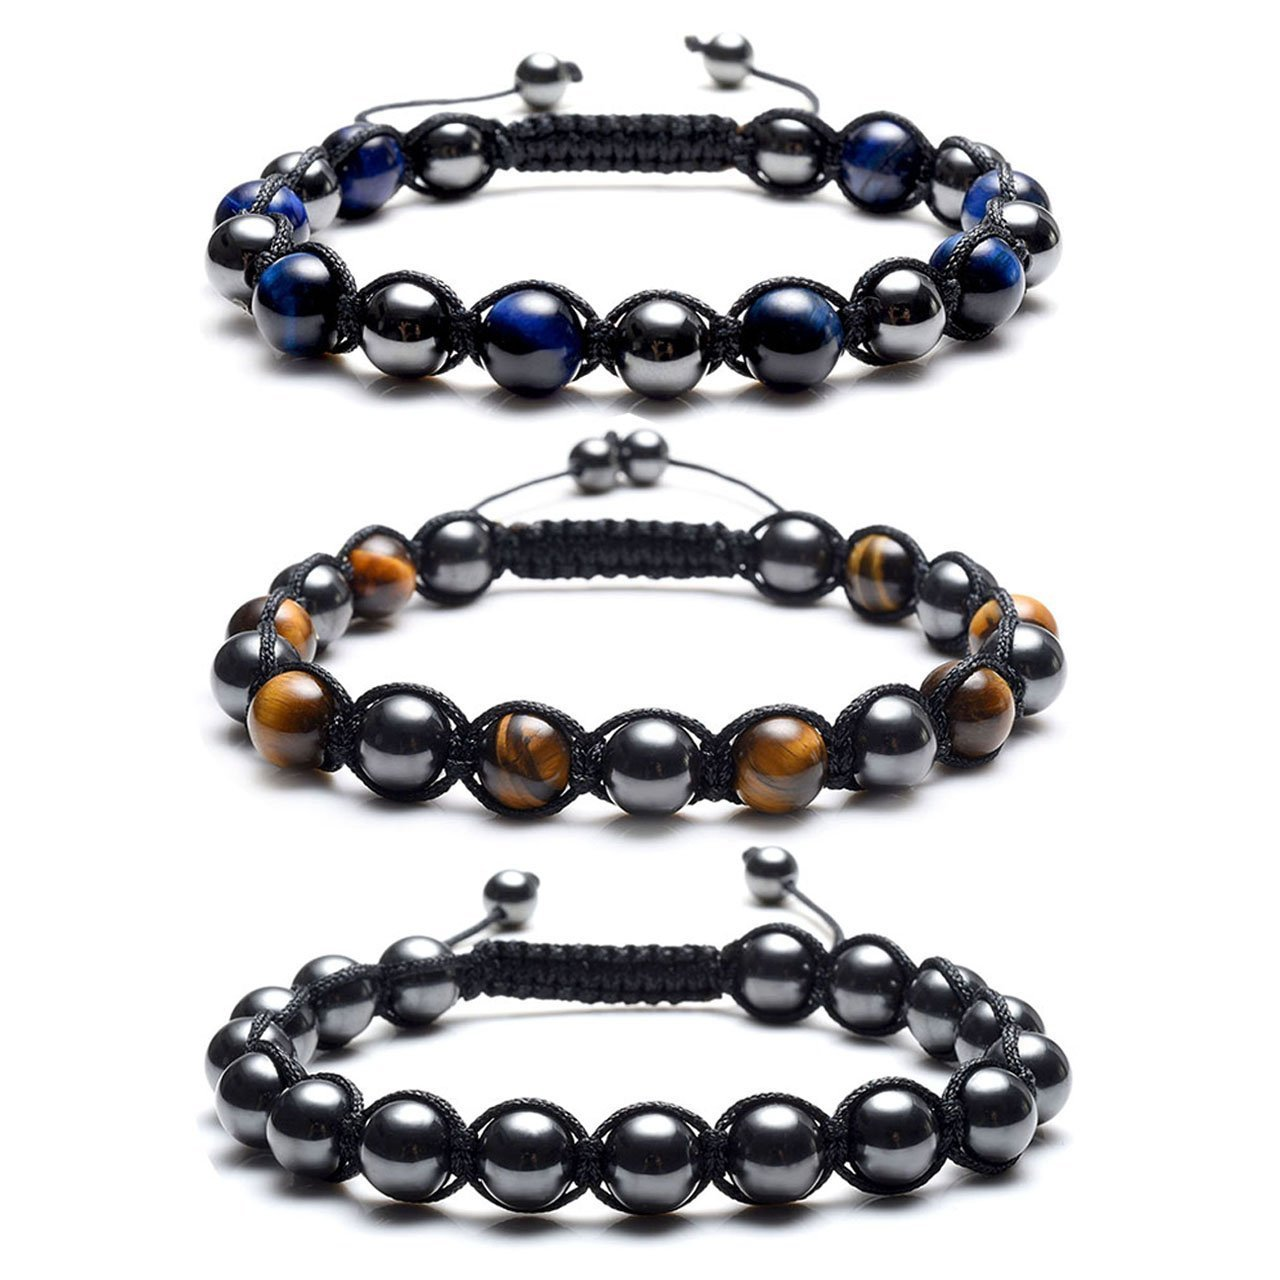 Top Plaza Men's Women's Reiki Healing Energy Natural Tiger Eye Stone Magnetic Hematite Therapy Beads Macrame Adjustable Braided Link Bracelet(Set of 3) by Top Plaza